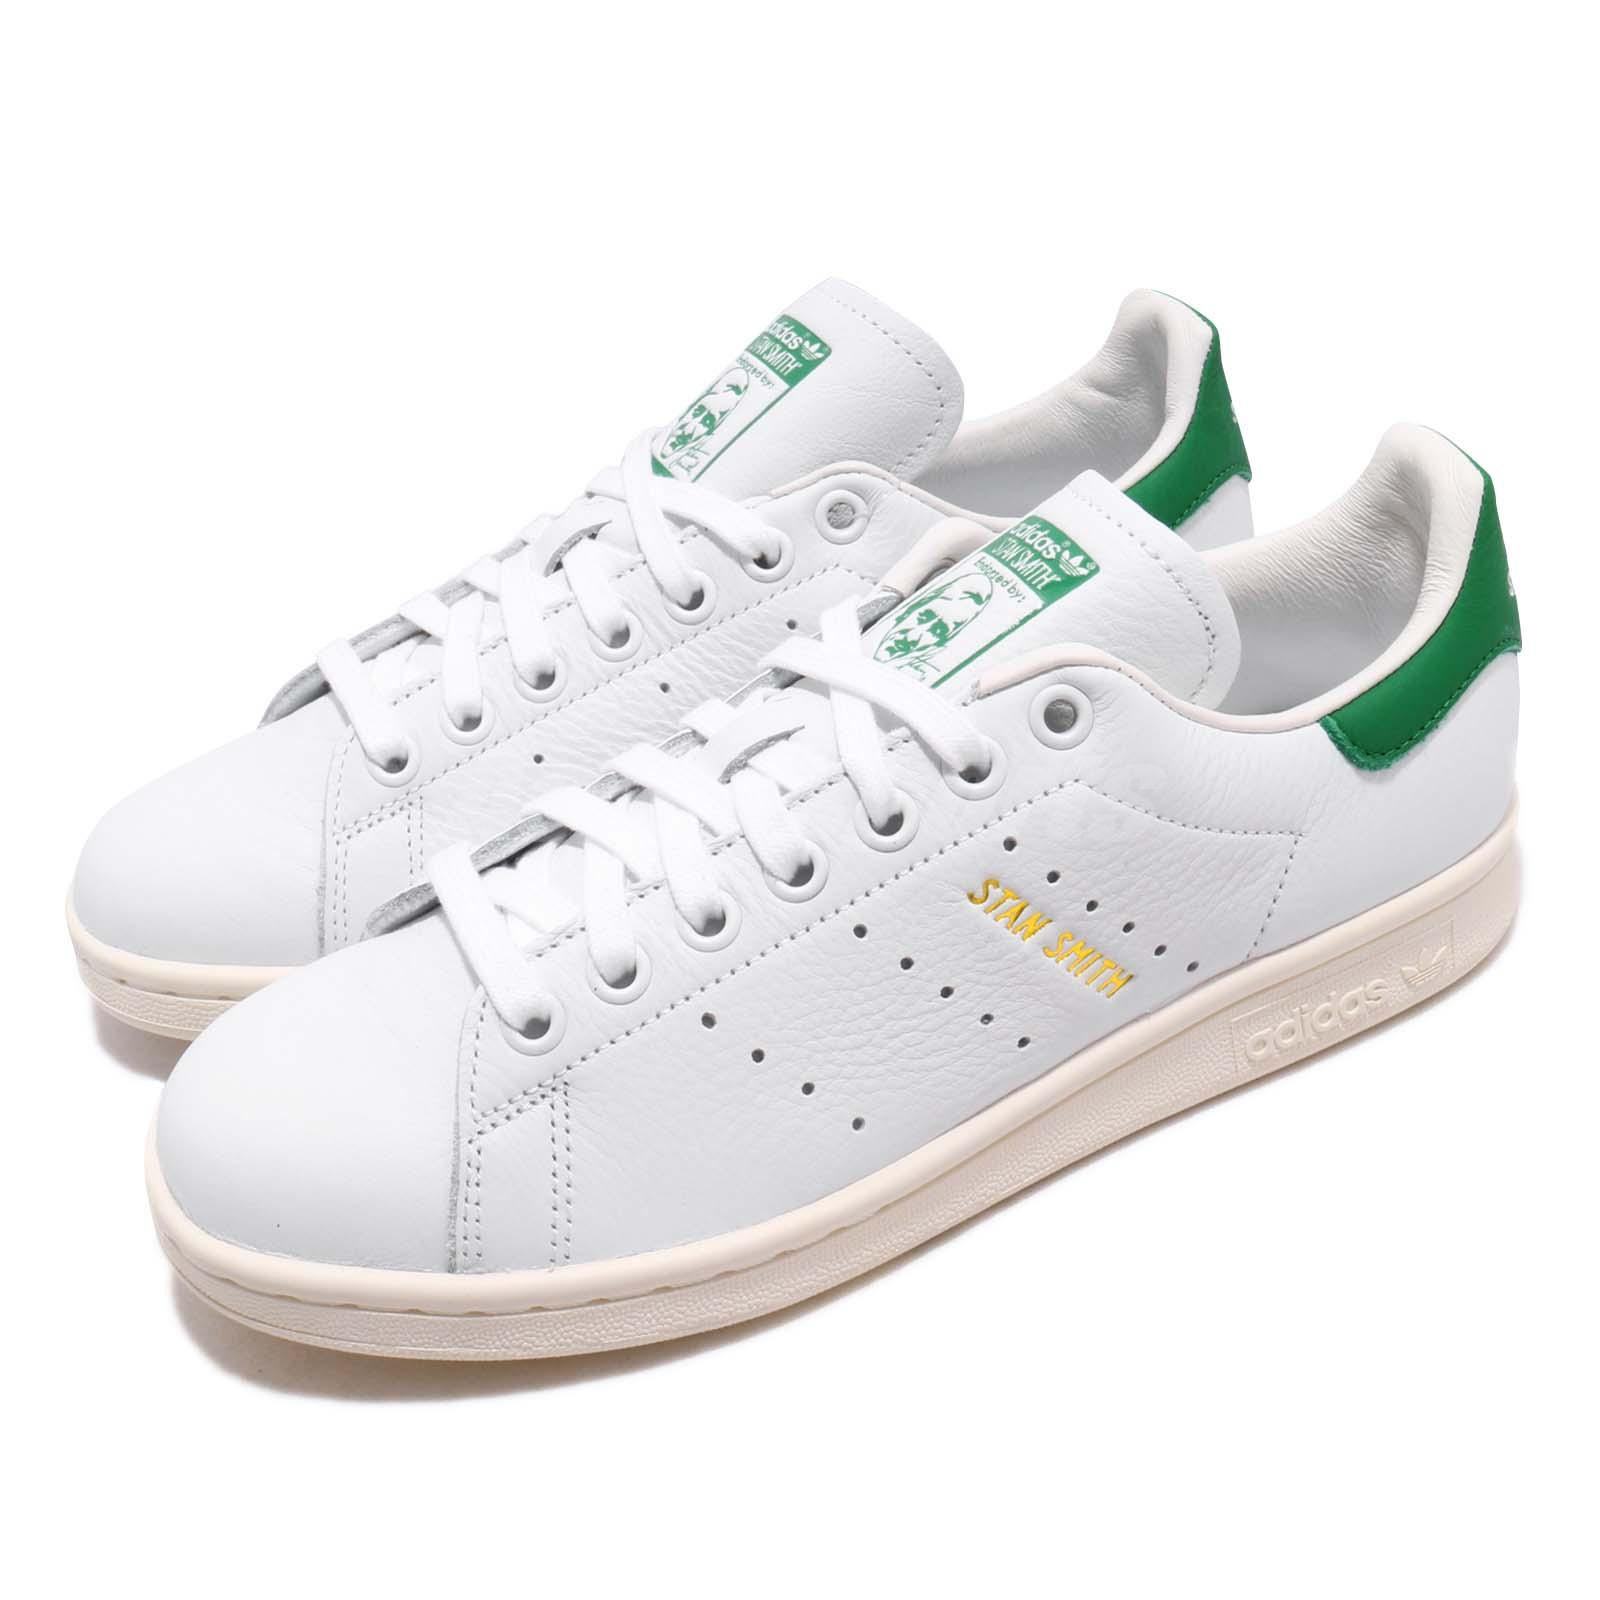 size 40 db326 8b3d6 Details about adidas Originals Stan Smith Forever White Green Men Casual  Shoes Sneakers EF7508